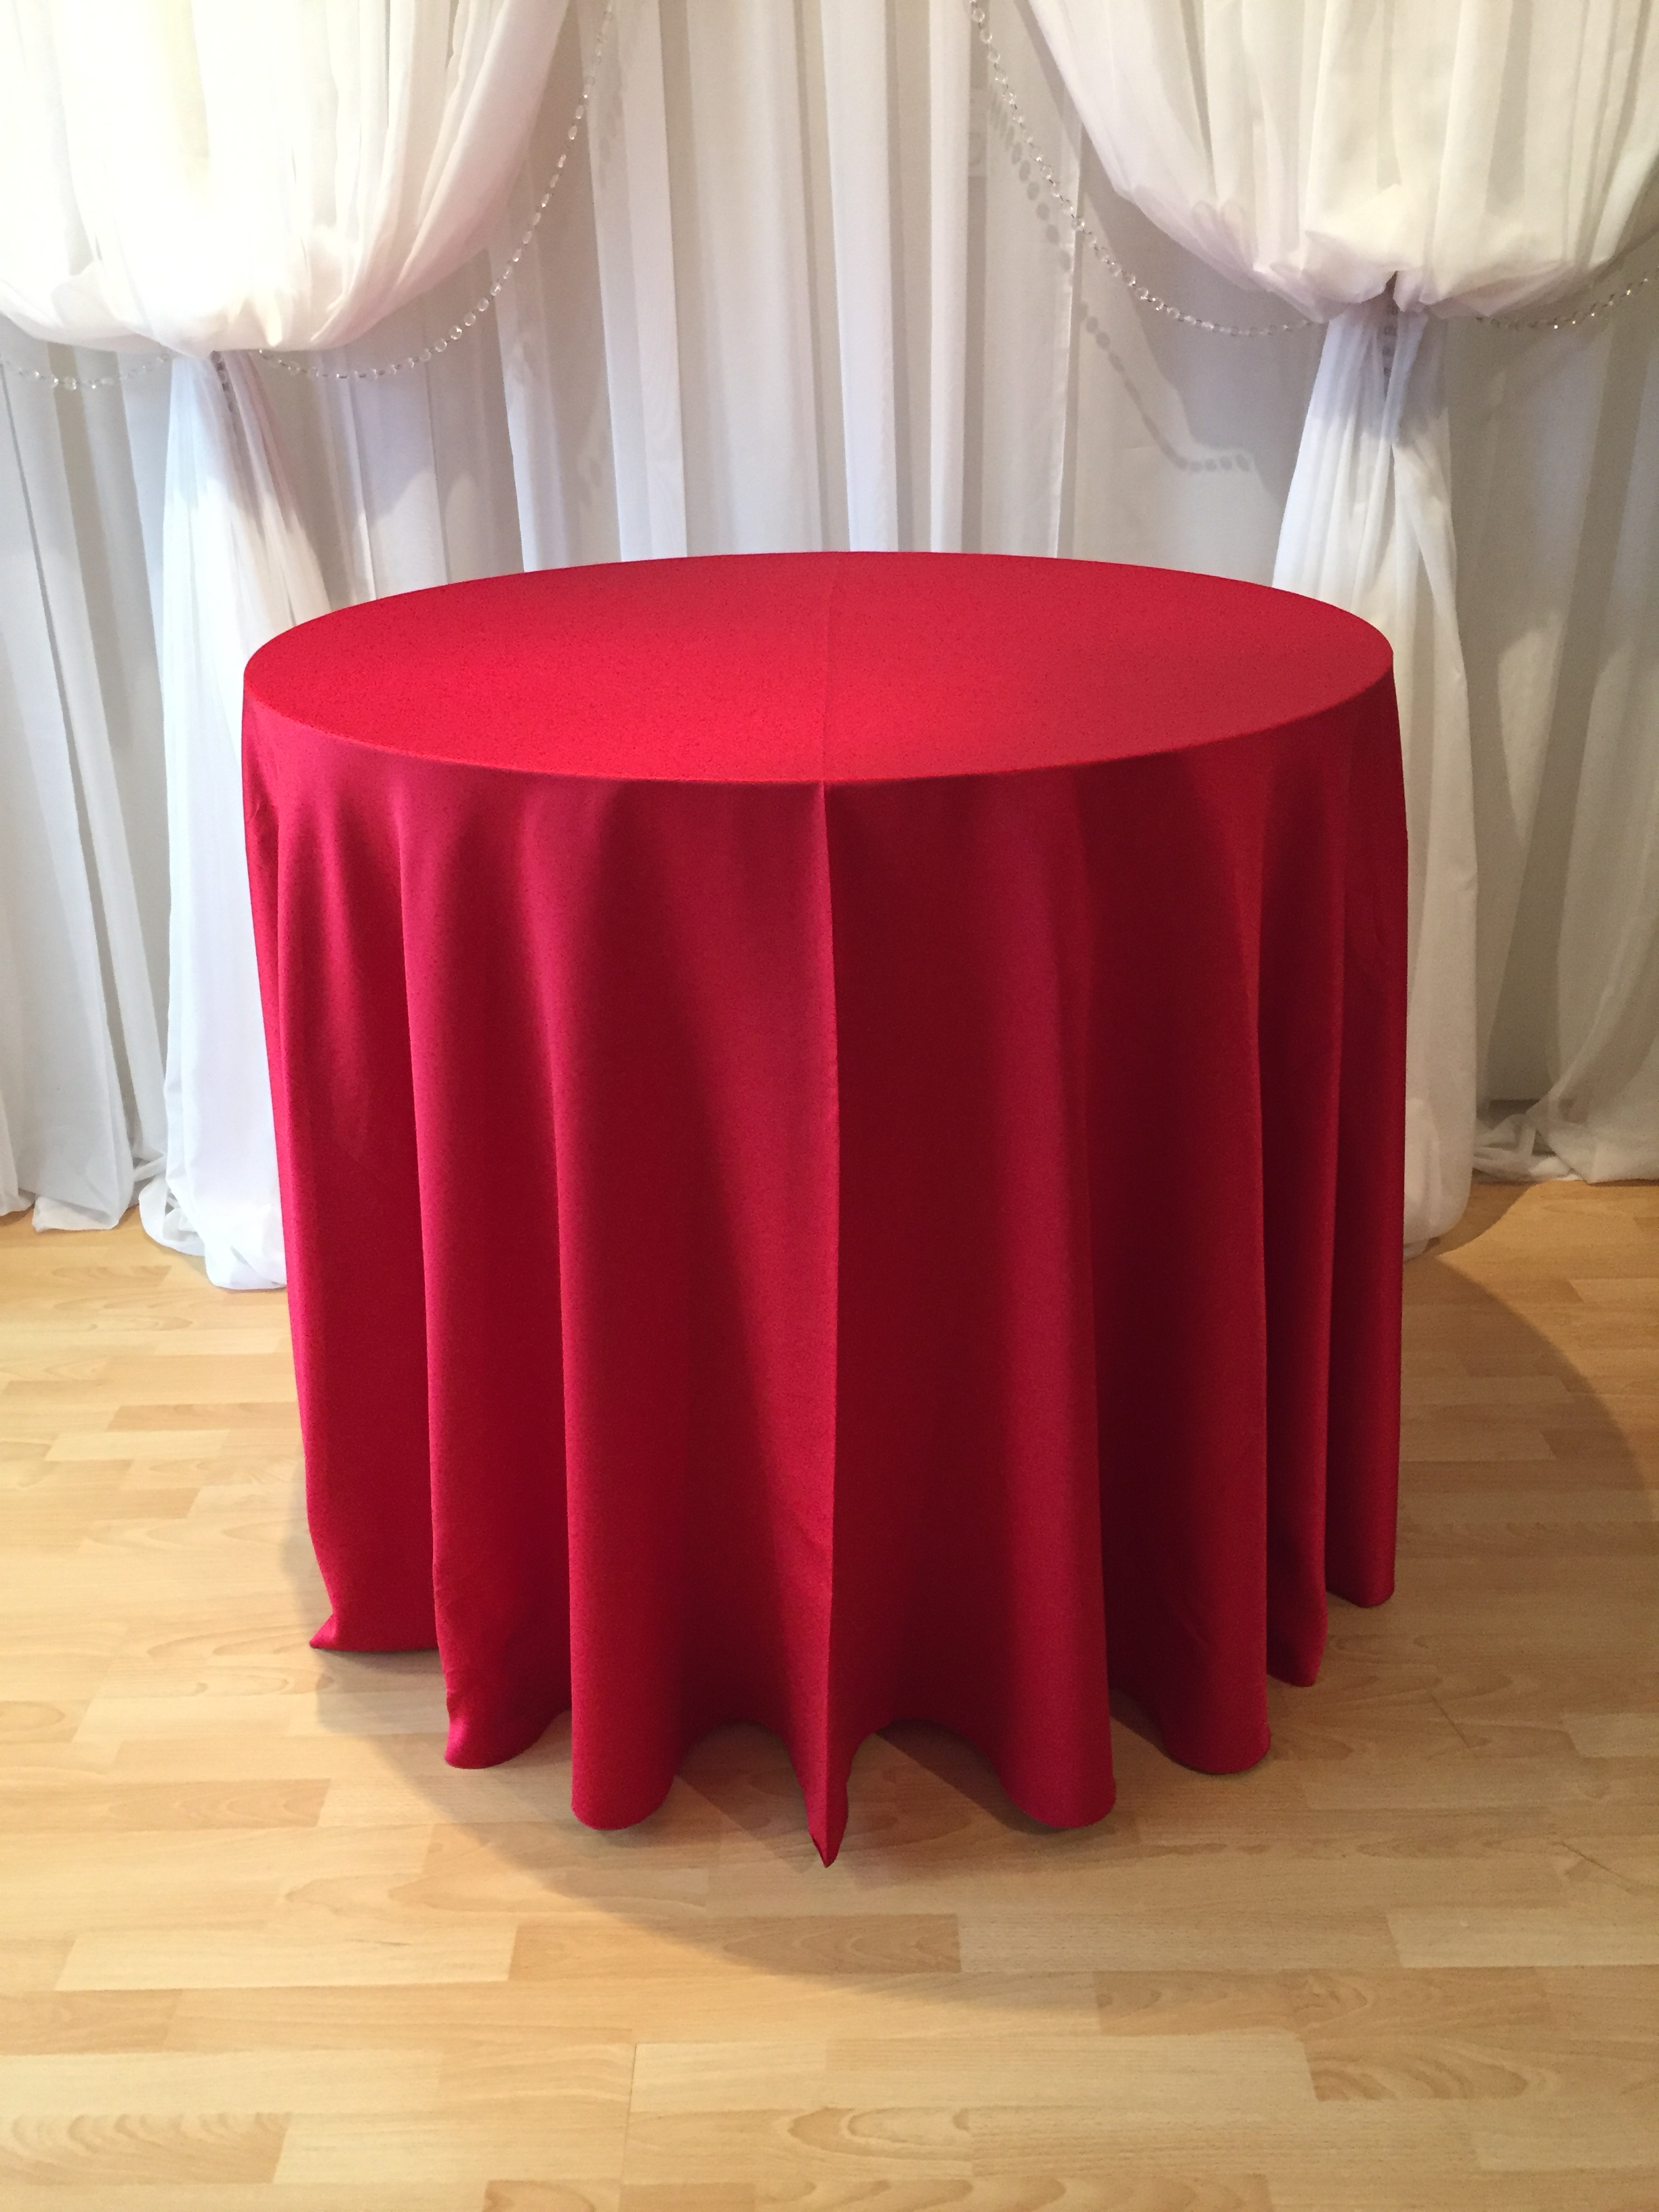 Whiteccivorysash besides Gray Canvas Fabric Texture besides Crystal Candelabra Wedding Rentals T a together with Table Cloth T 132 Ultra Satin Red further Beauty And The Beast Party Part I The Decorations And The Food. on tablecloth and chairs